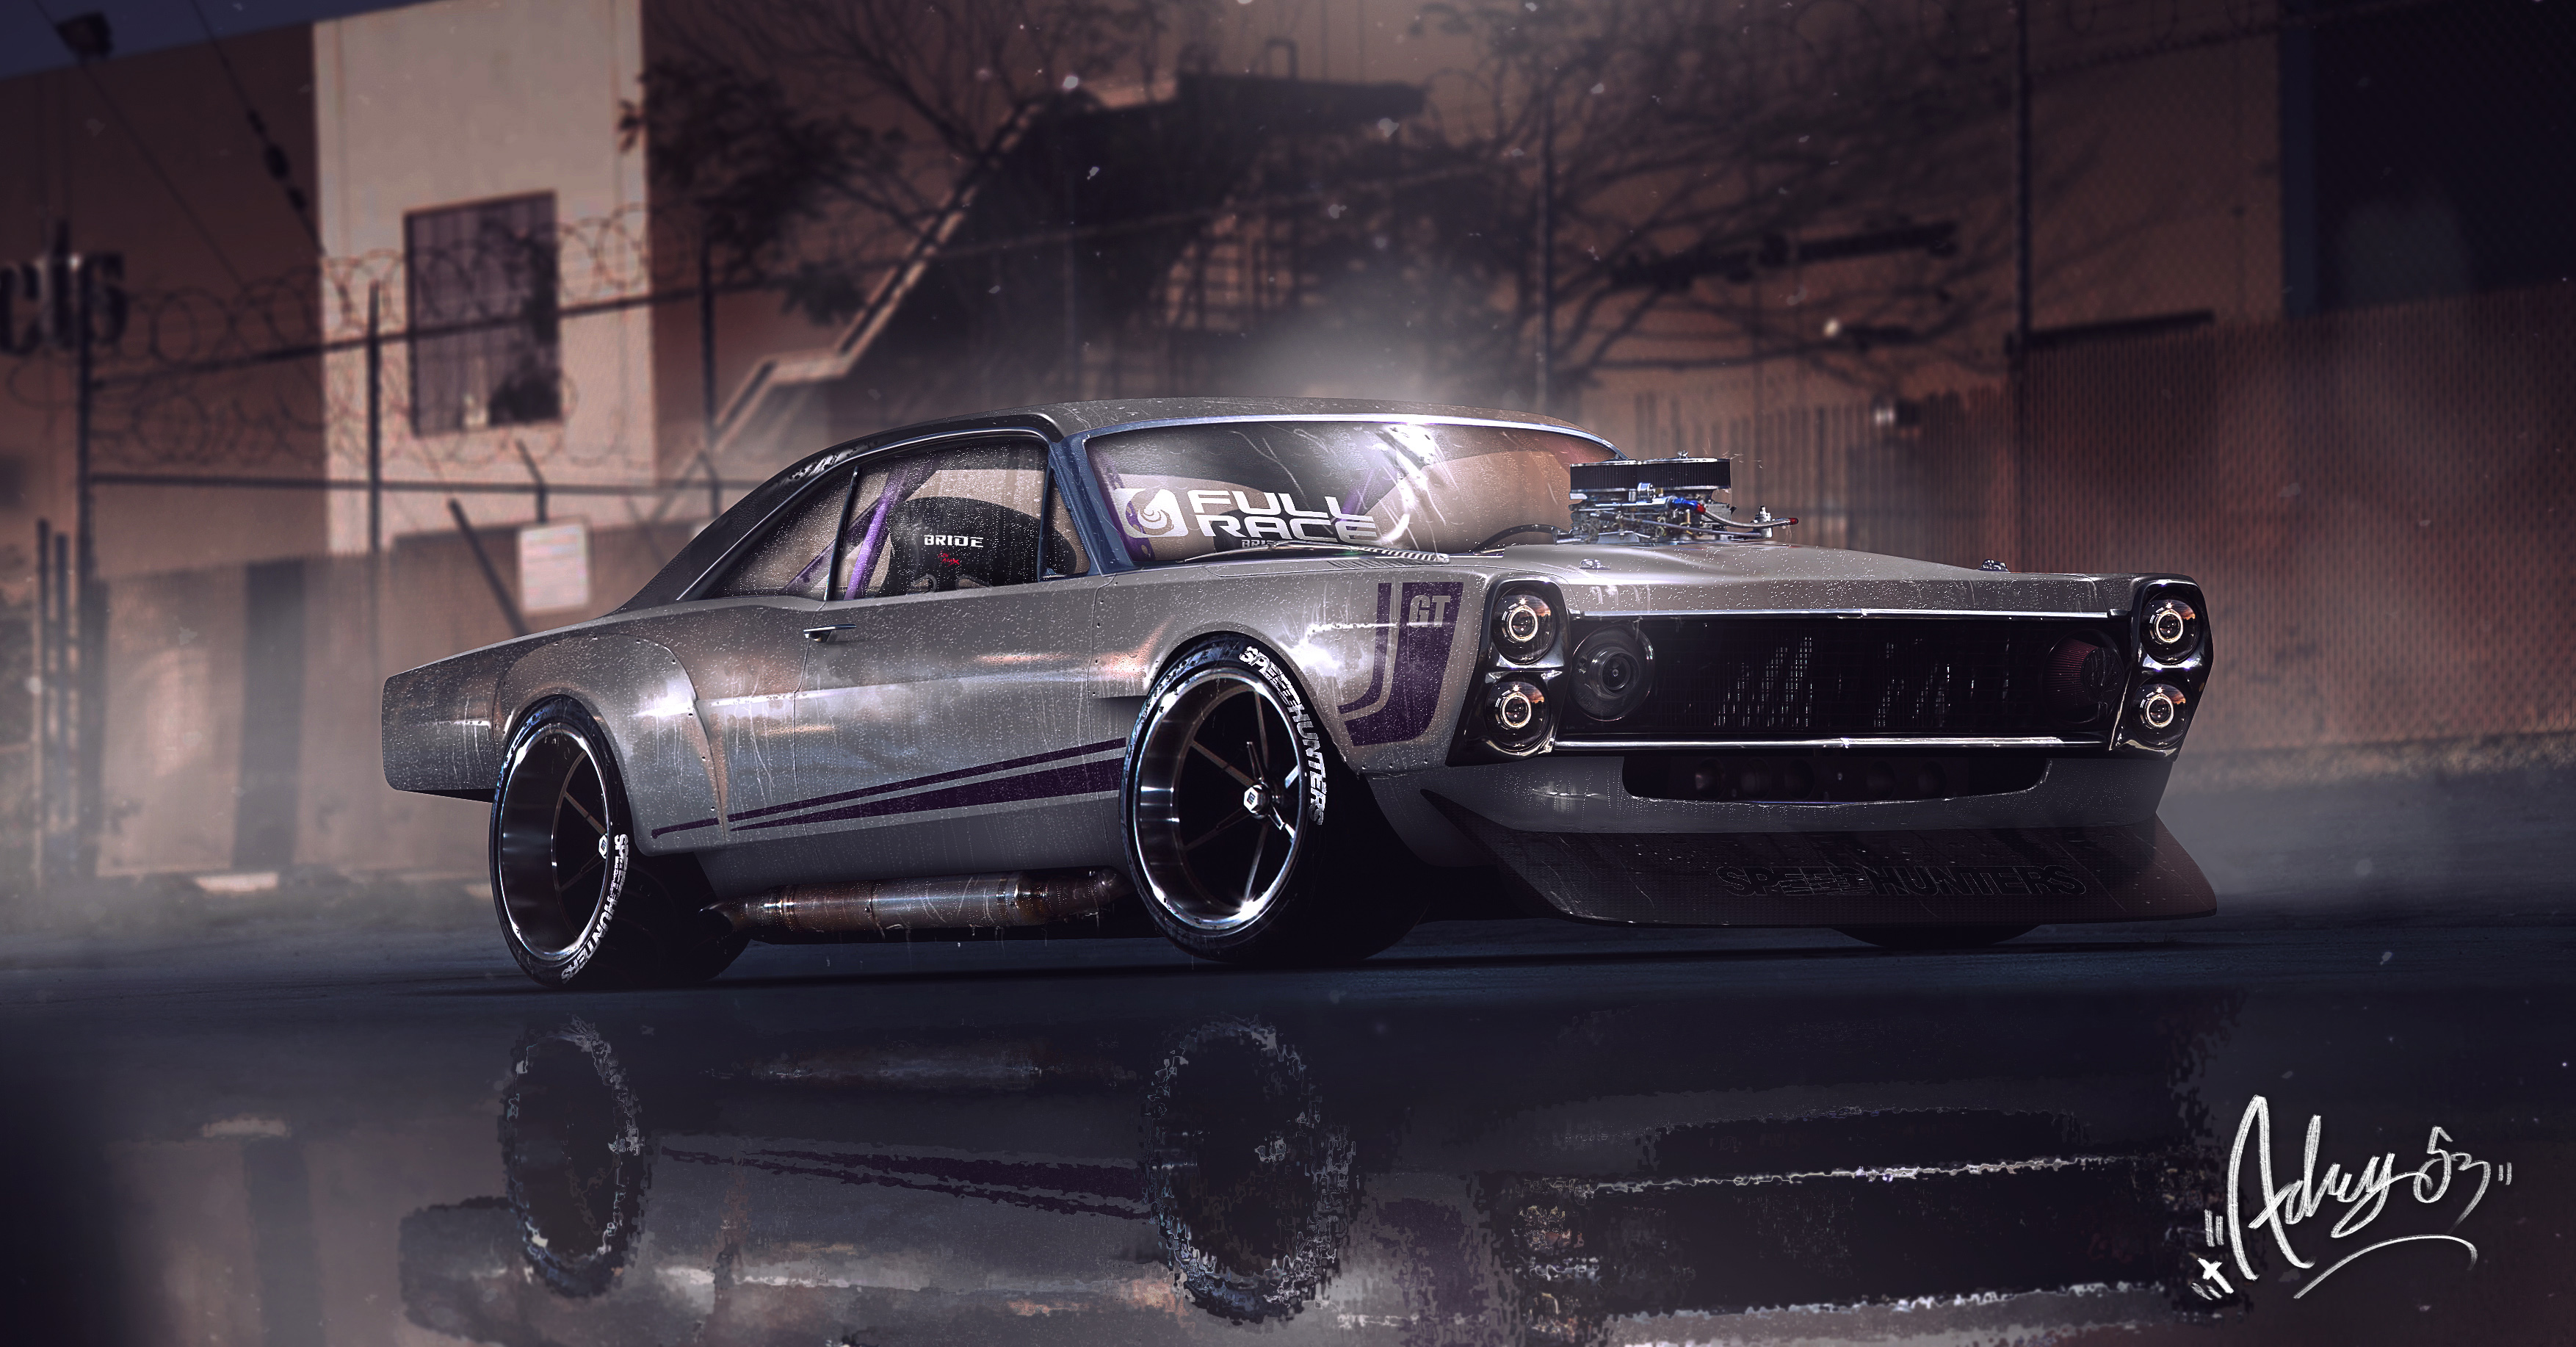 1366x768 Muscle Car Graphical Art 1366x768 Resolution Hd 4k